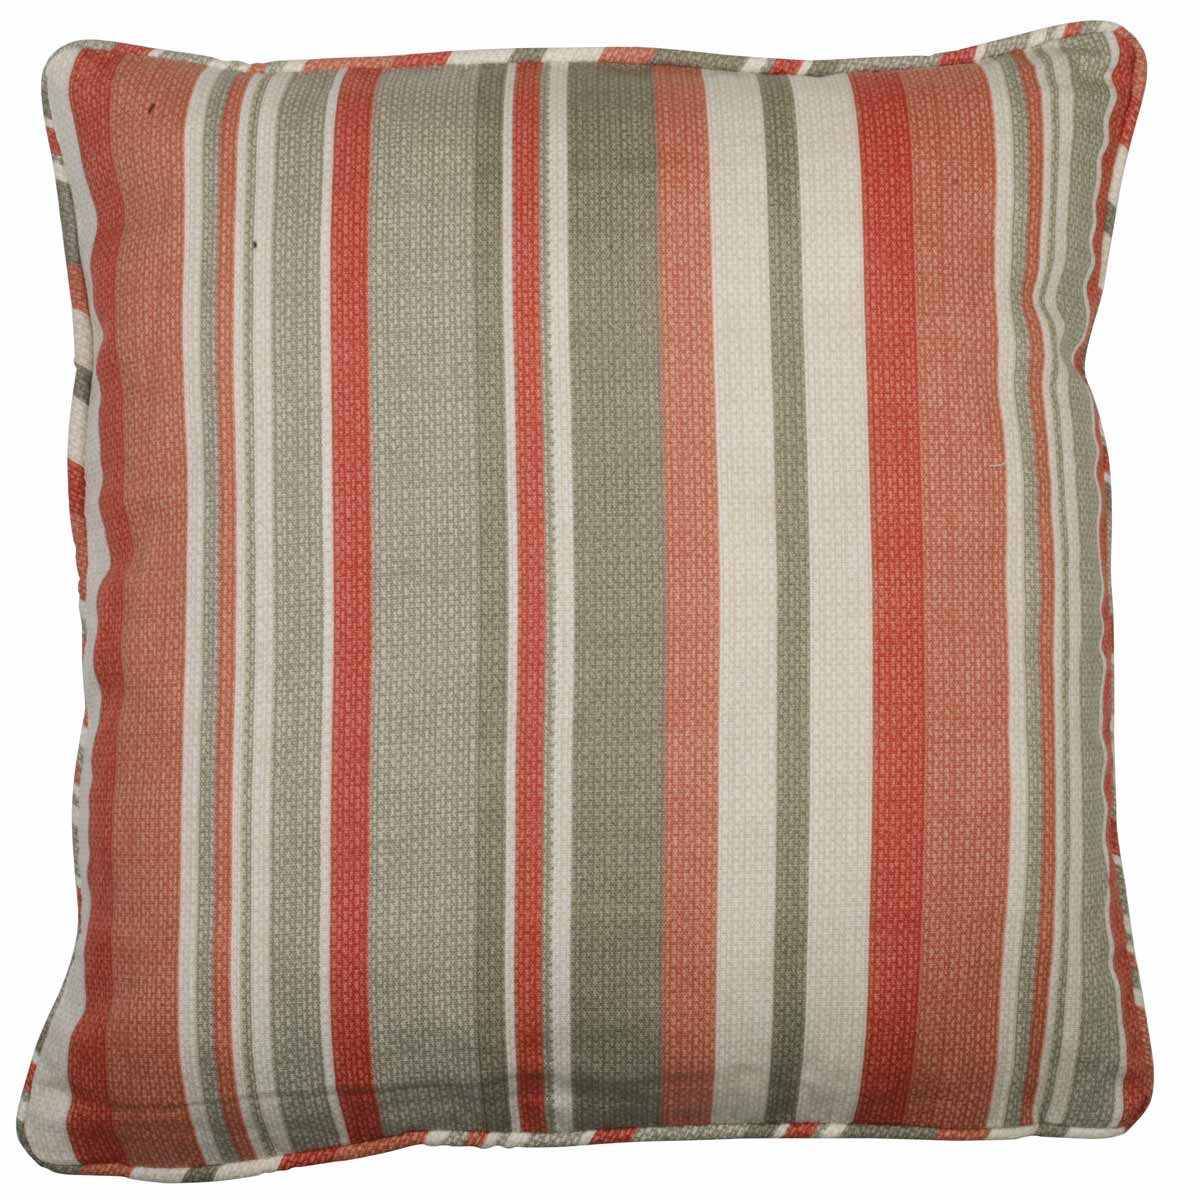 J Rosenthal Cushions And Throws Melrose Stripe C/Cover Spice Picture